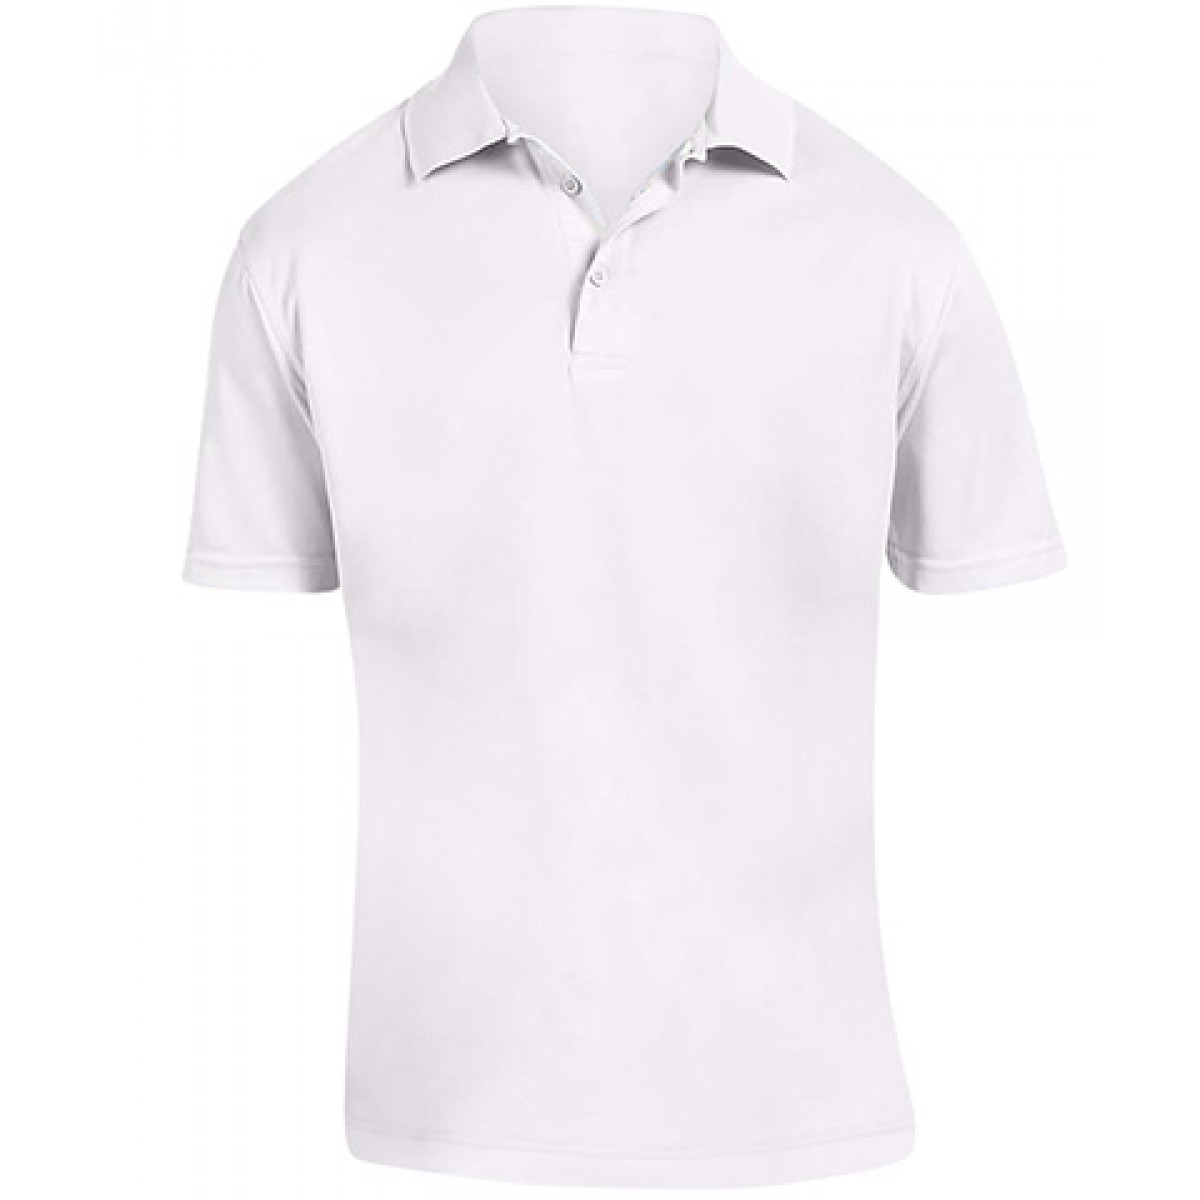 Men's 4 oz. Polytech Polo-White-M